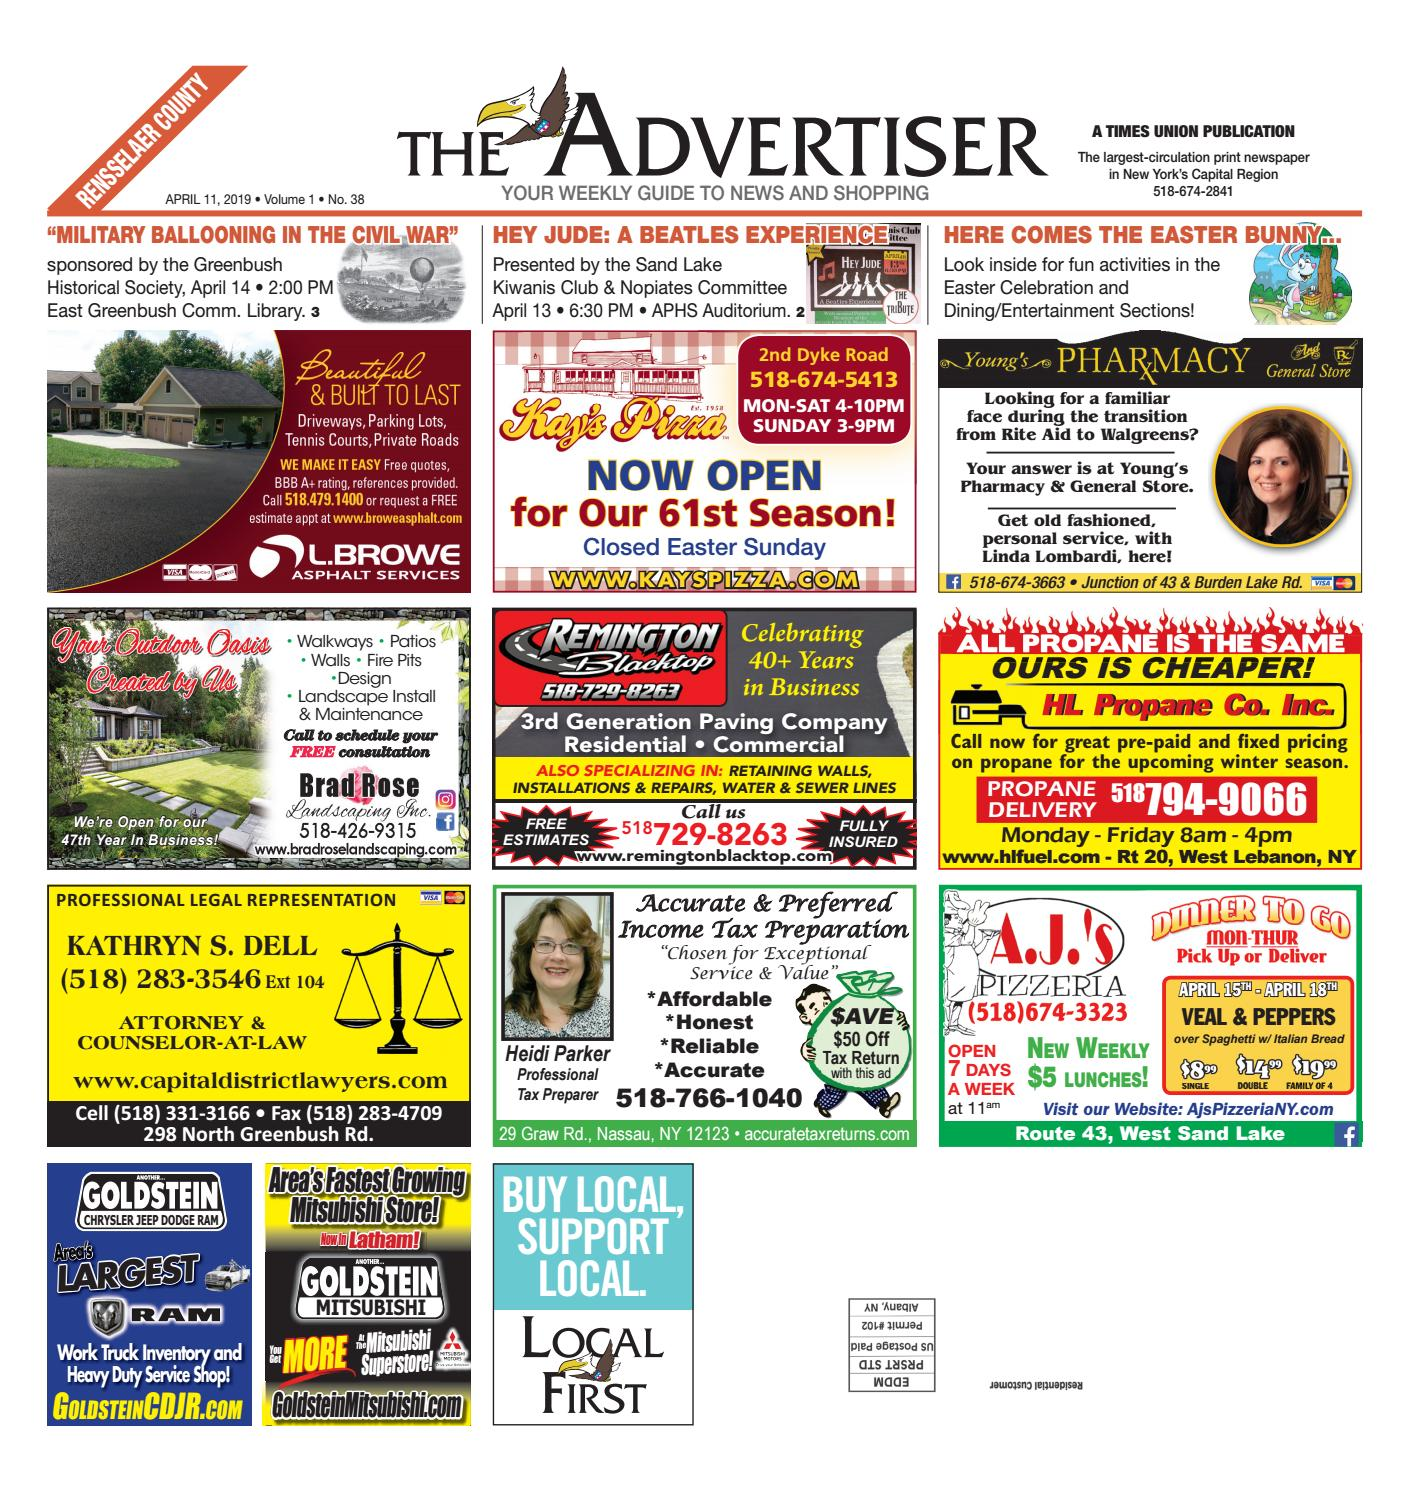 Local First The Advertiser 041119 by Capital Region Weekly